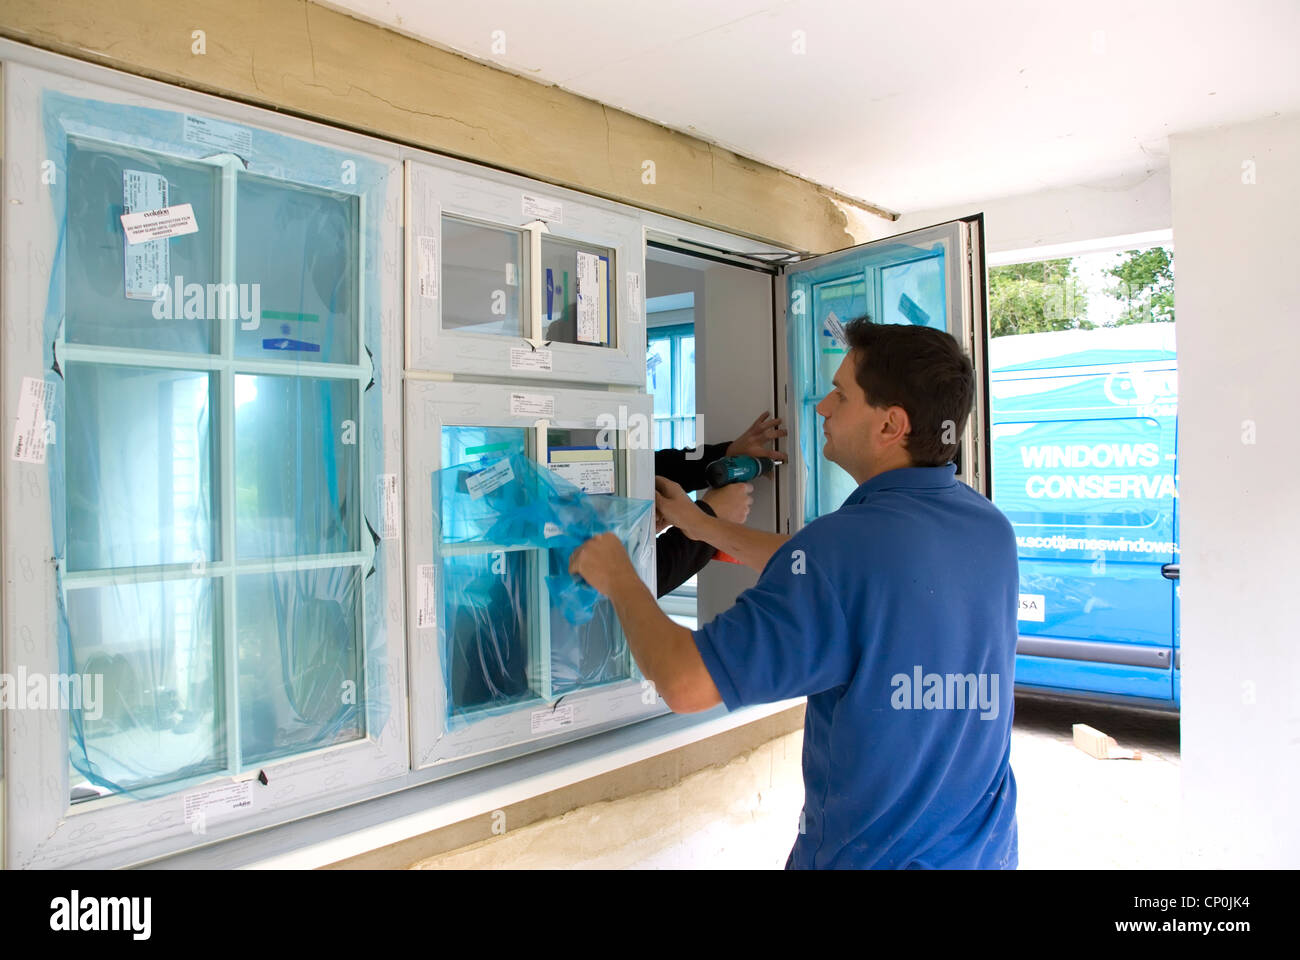 Double Glazed Stock Photos & Double Glazed Stock Images - Alamy